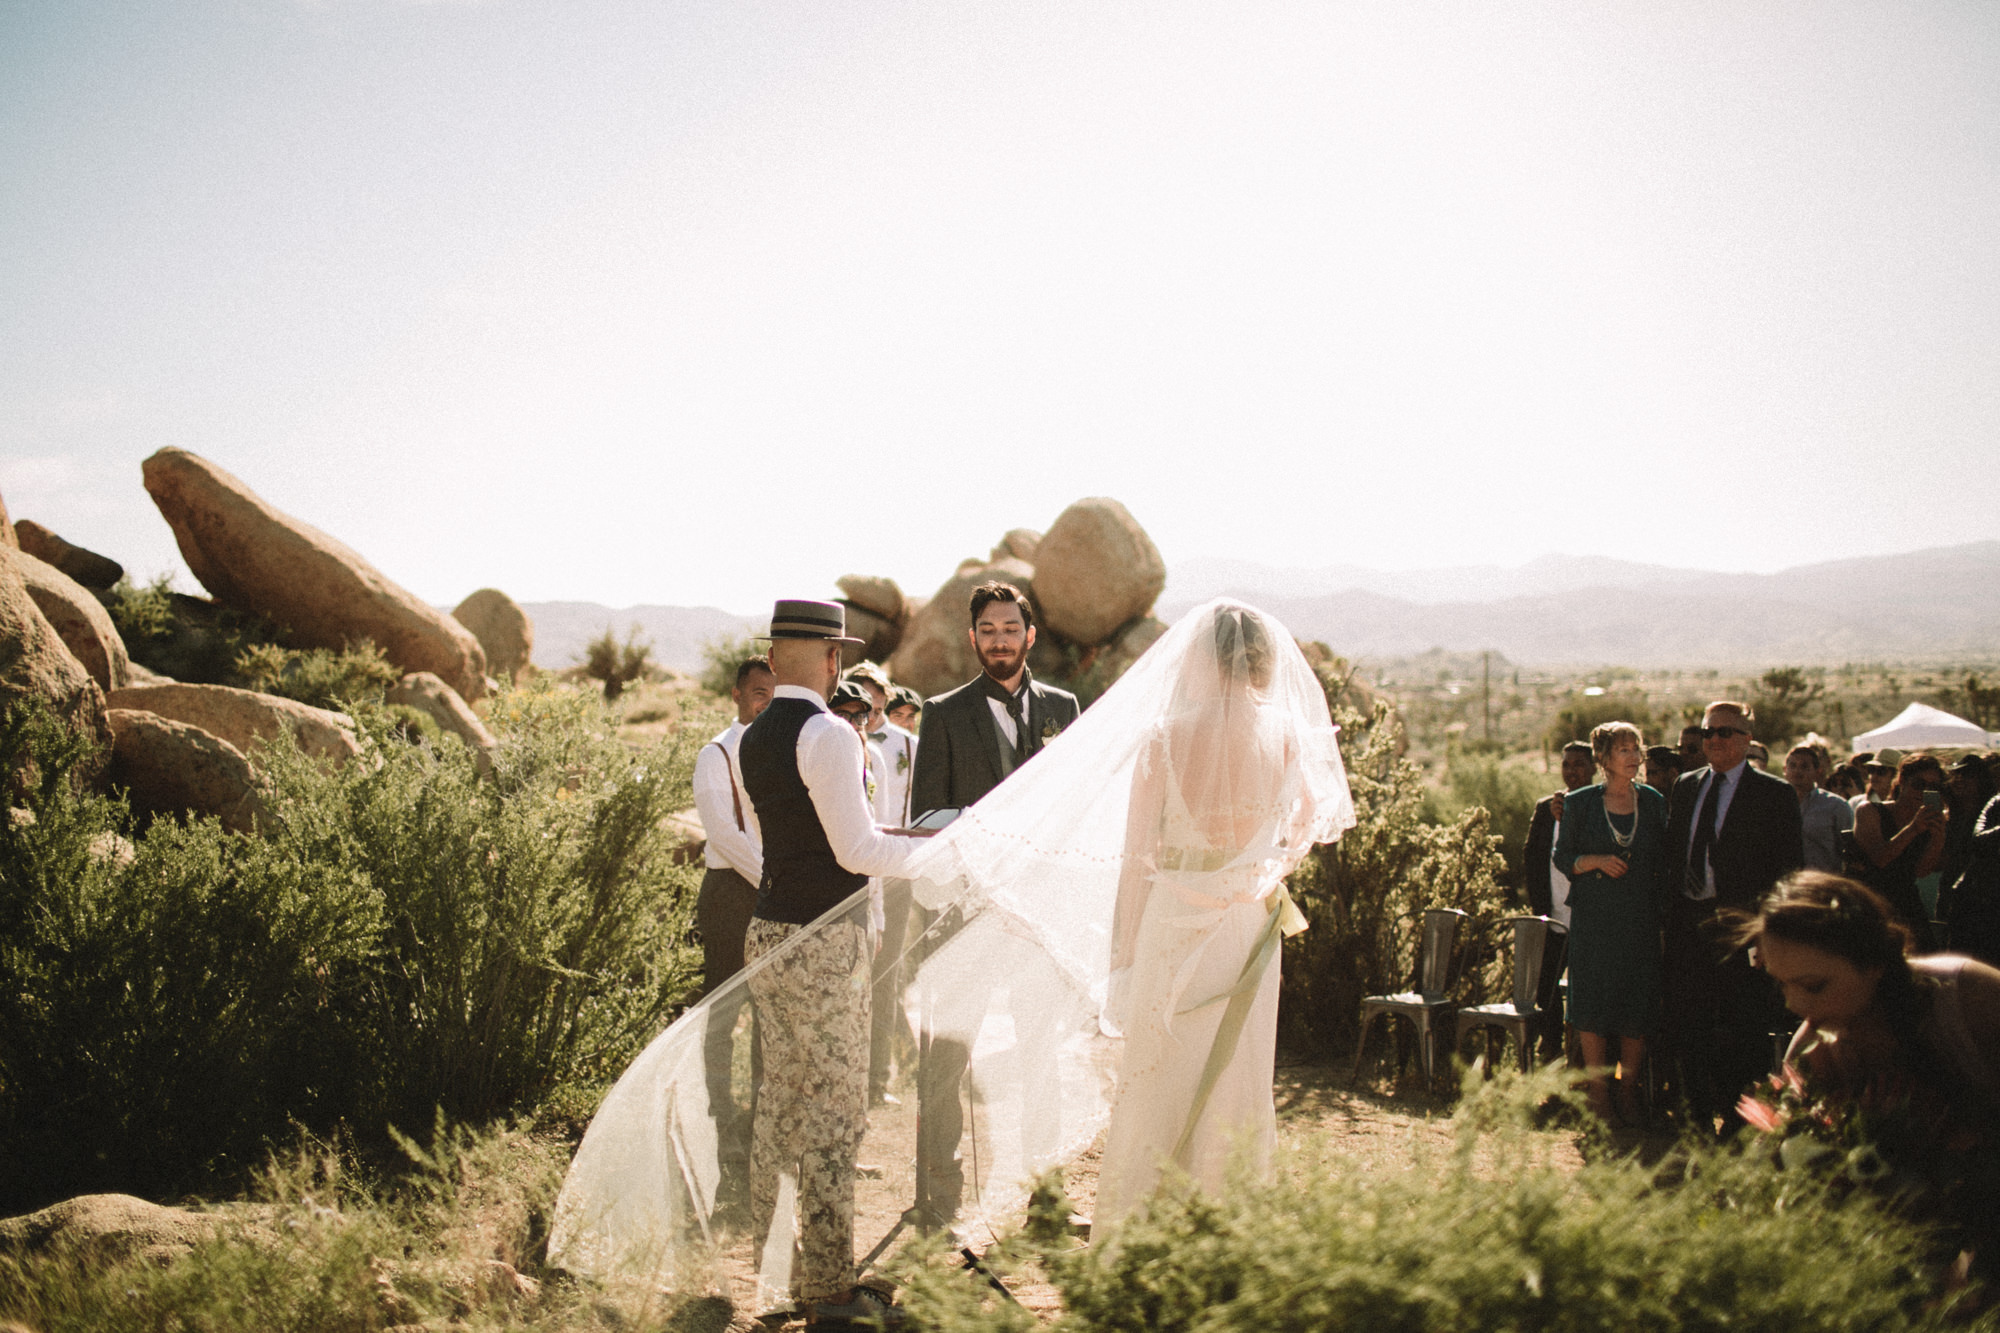 vows in the desert